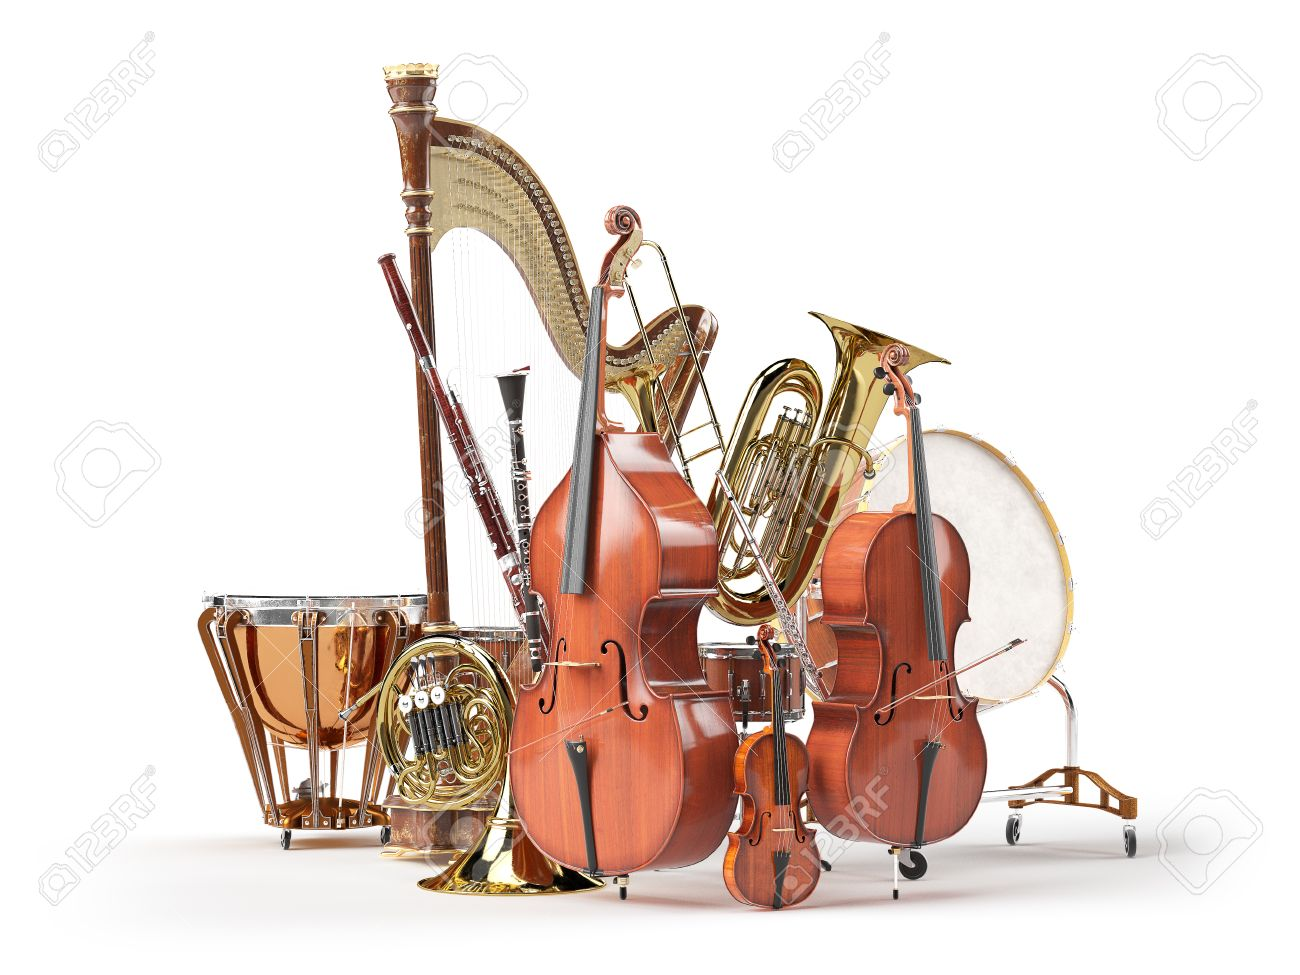 Orchestra musical instruments isolated on white. 3d render - 58115944